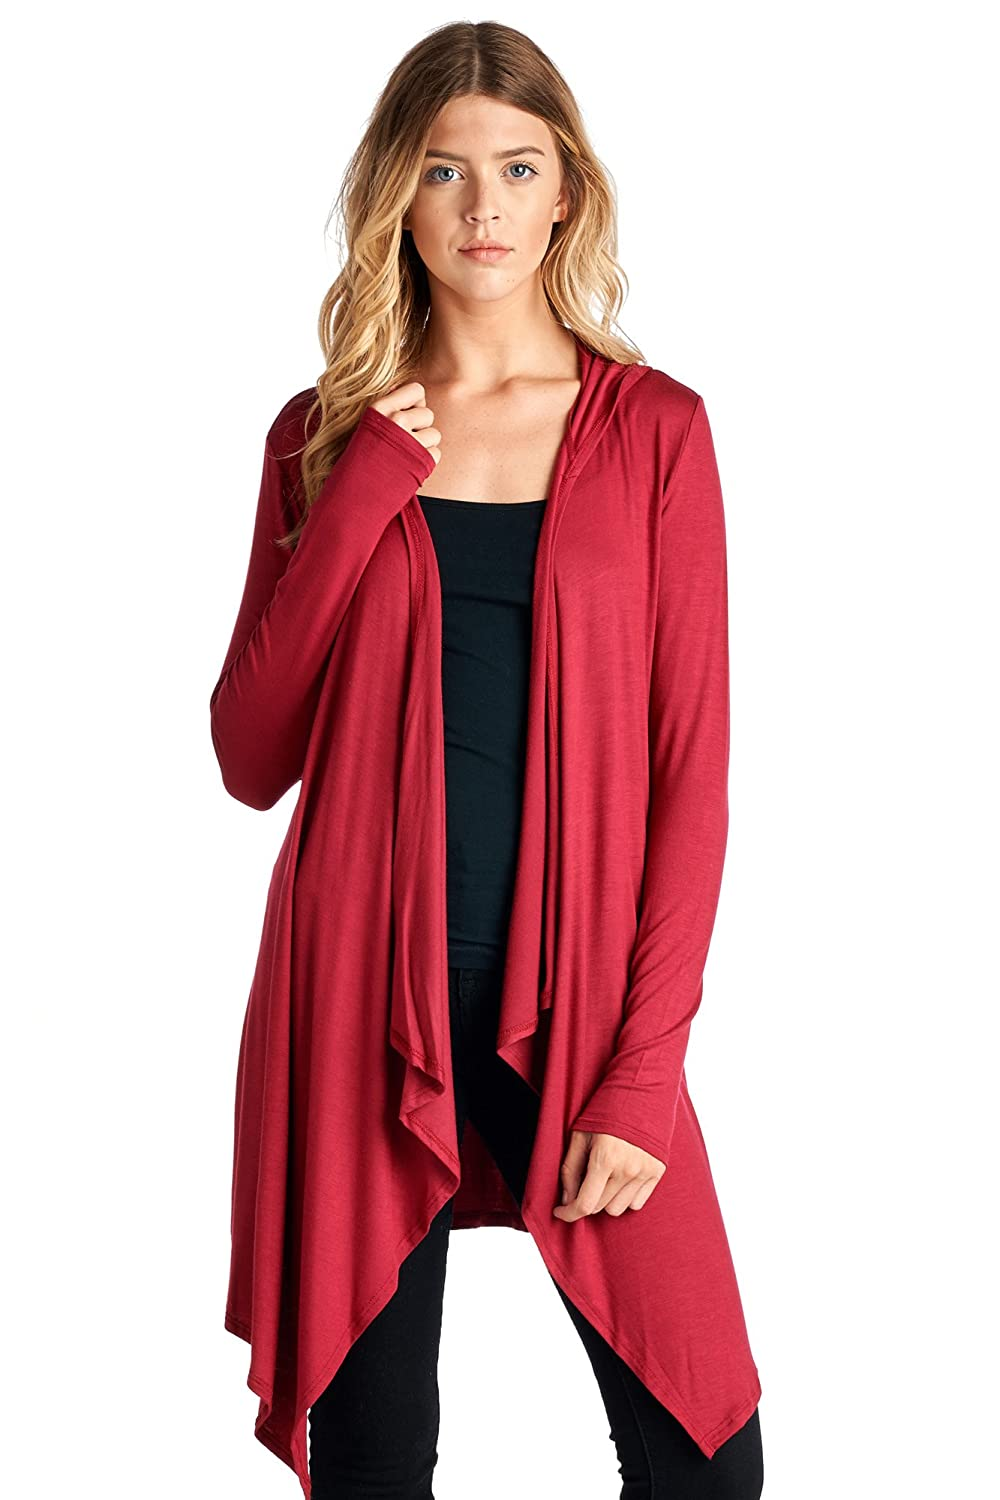 82 Days Women's Various Fabrics & Styles of Trendy Cardigan - Solid & Prints